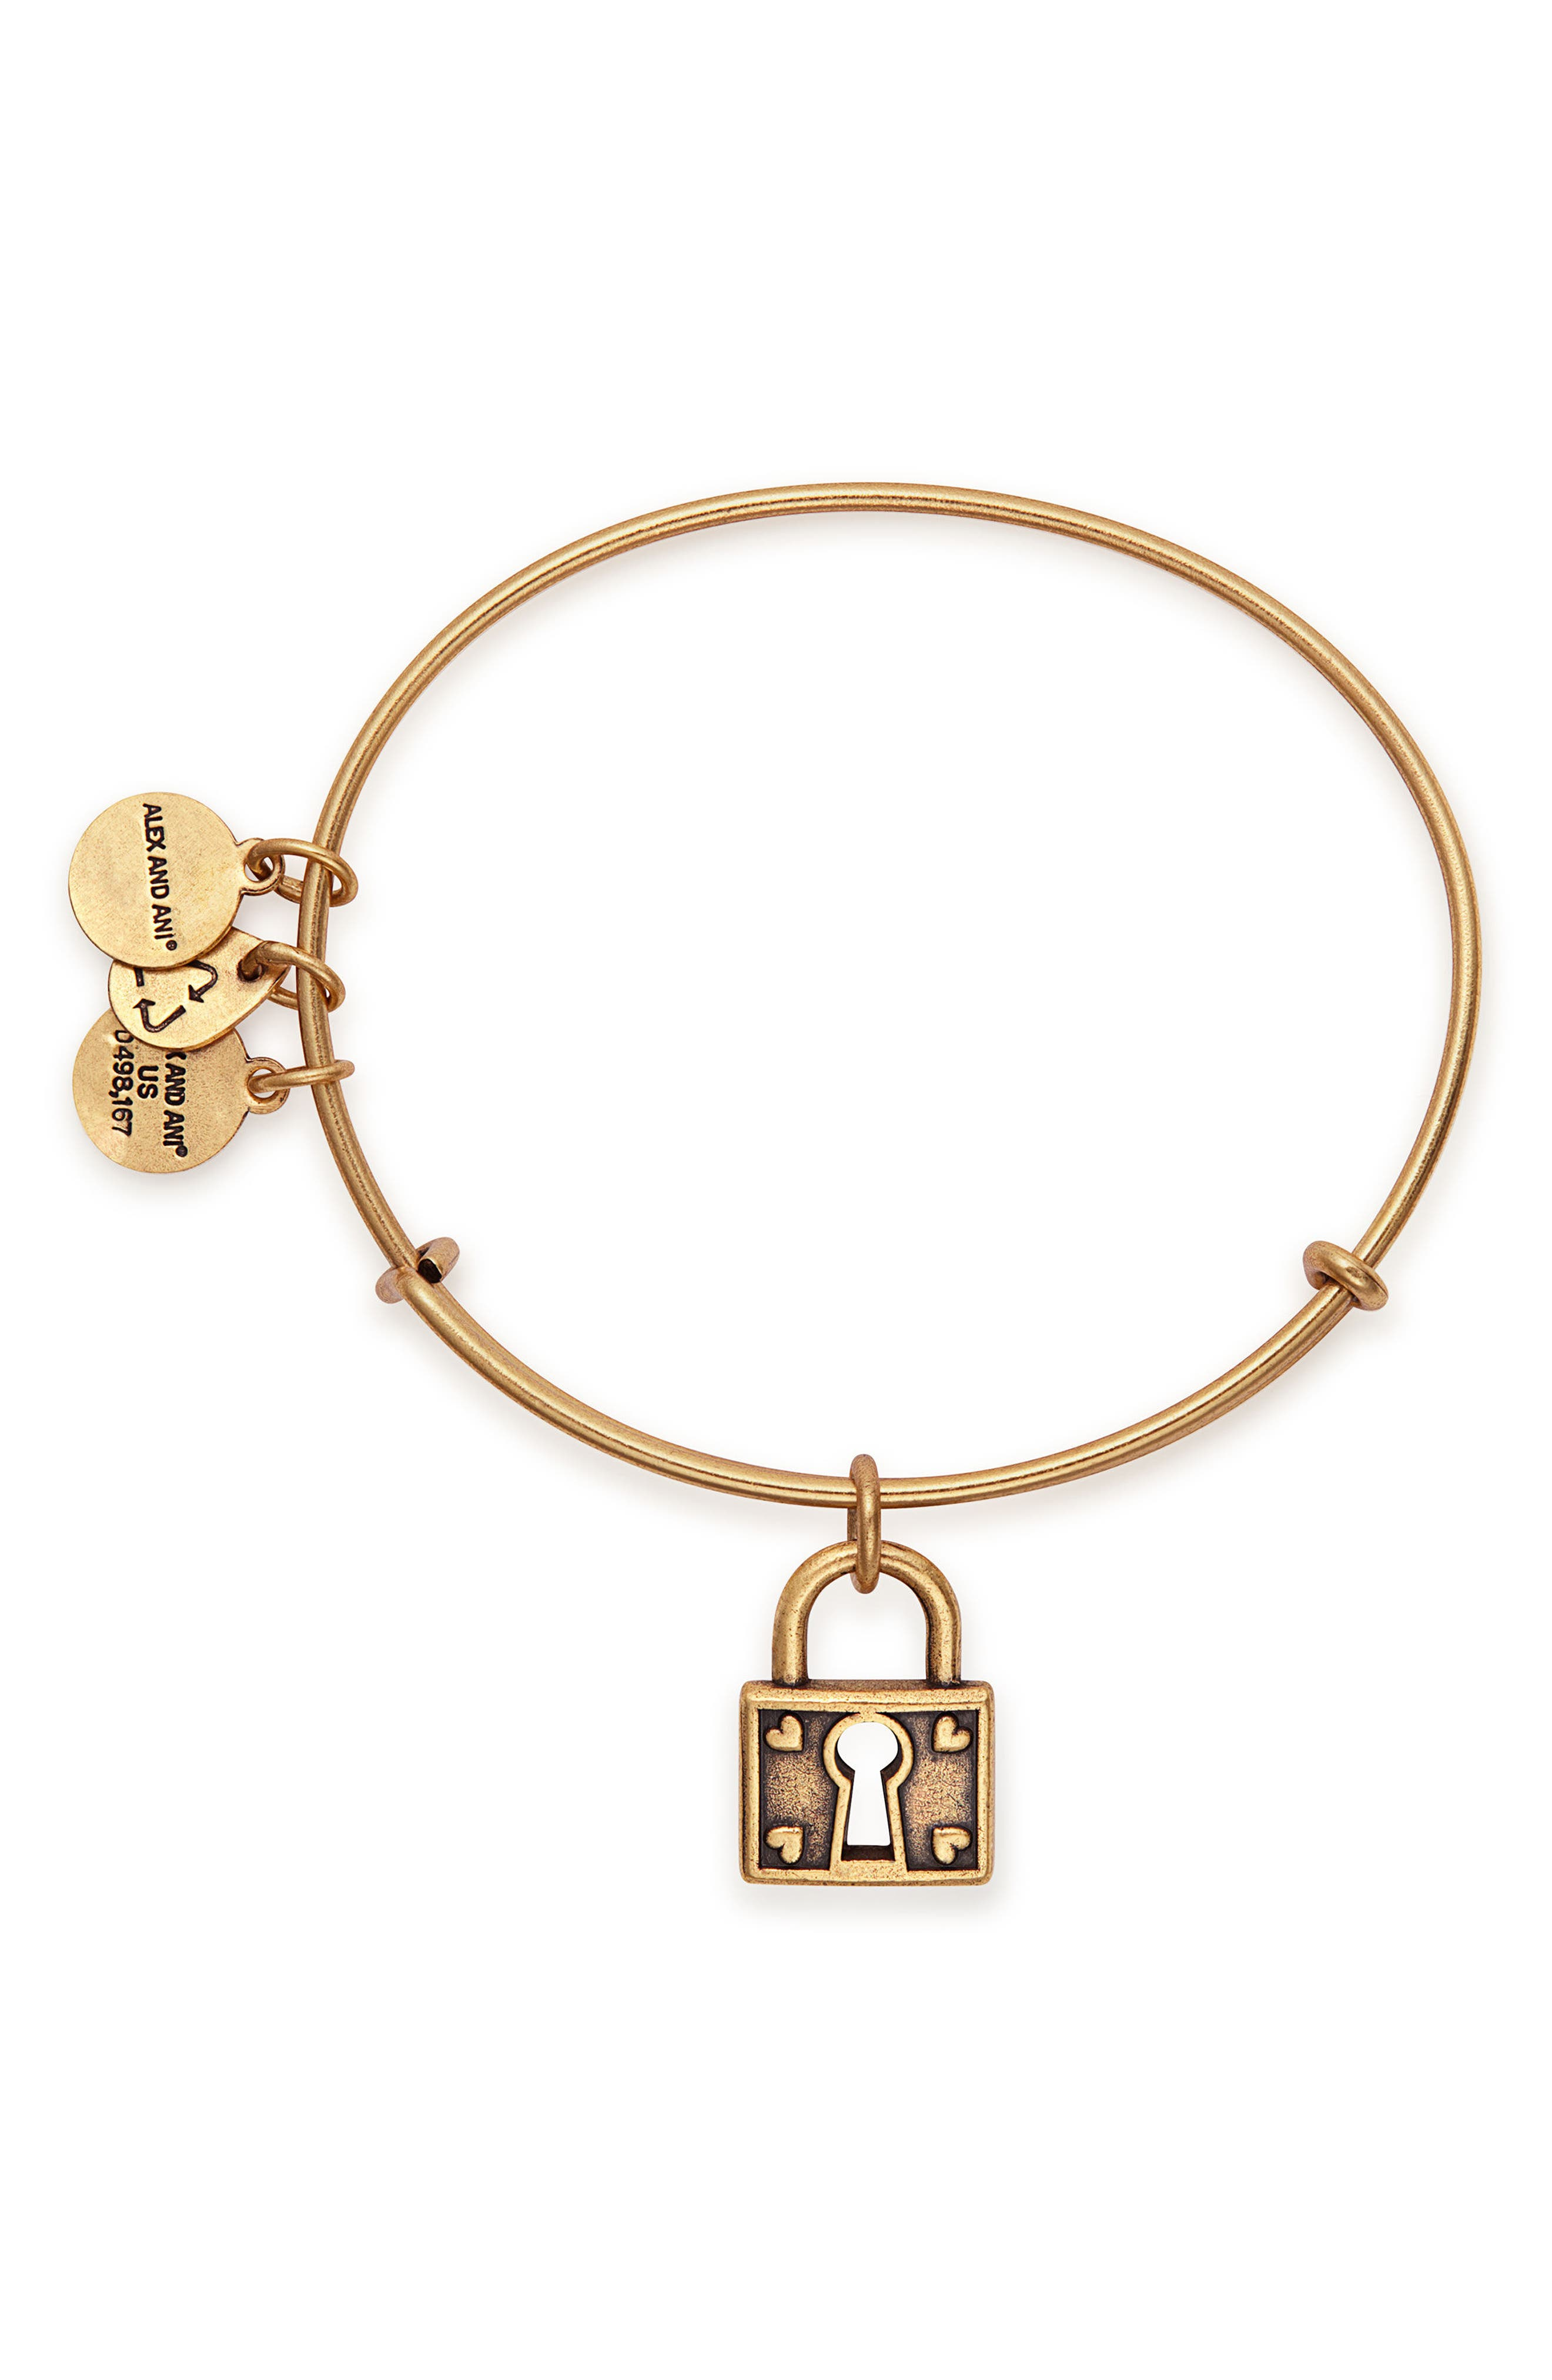 Unbreakable Love Adjustable Wire Bangle,                             Alternate thumbnail 2, color,                             Gold